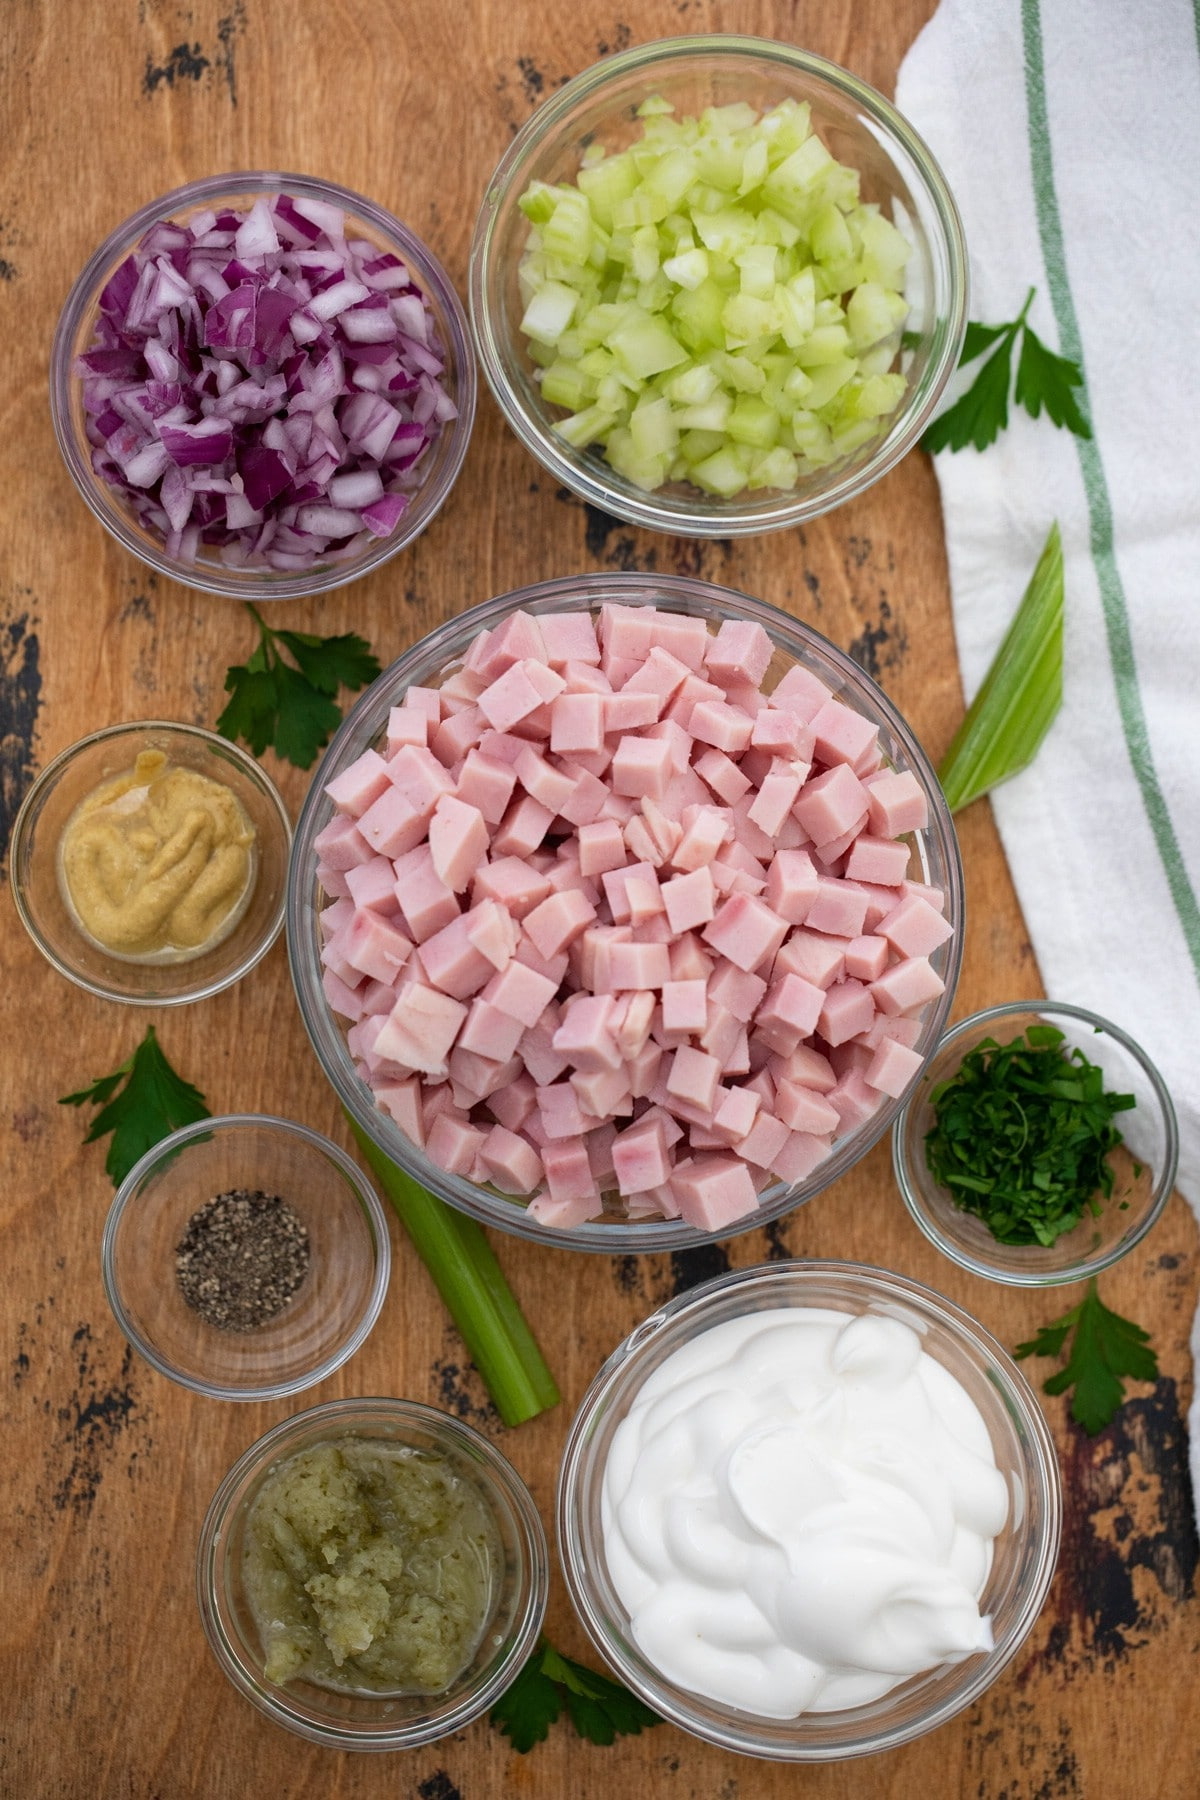 Ingredients for ham salad in bowls on cutting board